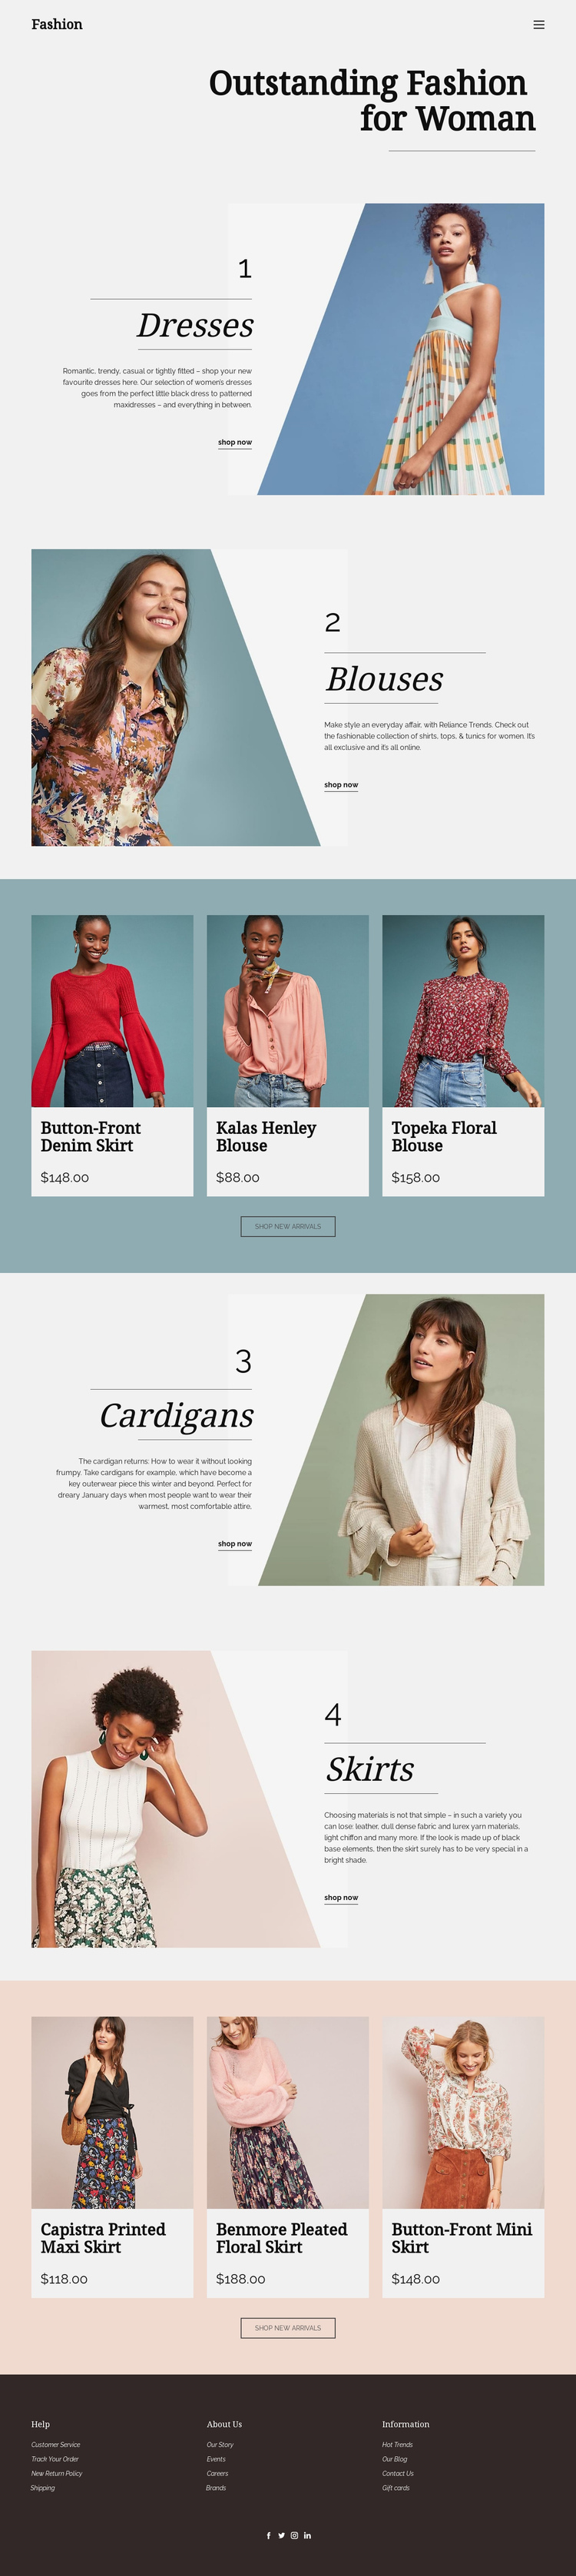 Fashion for Woman Website Builder Software